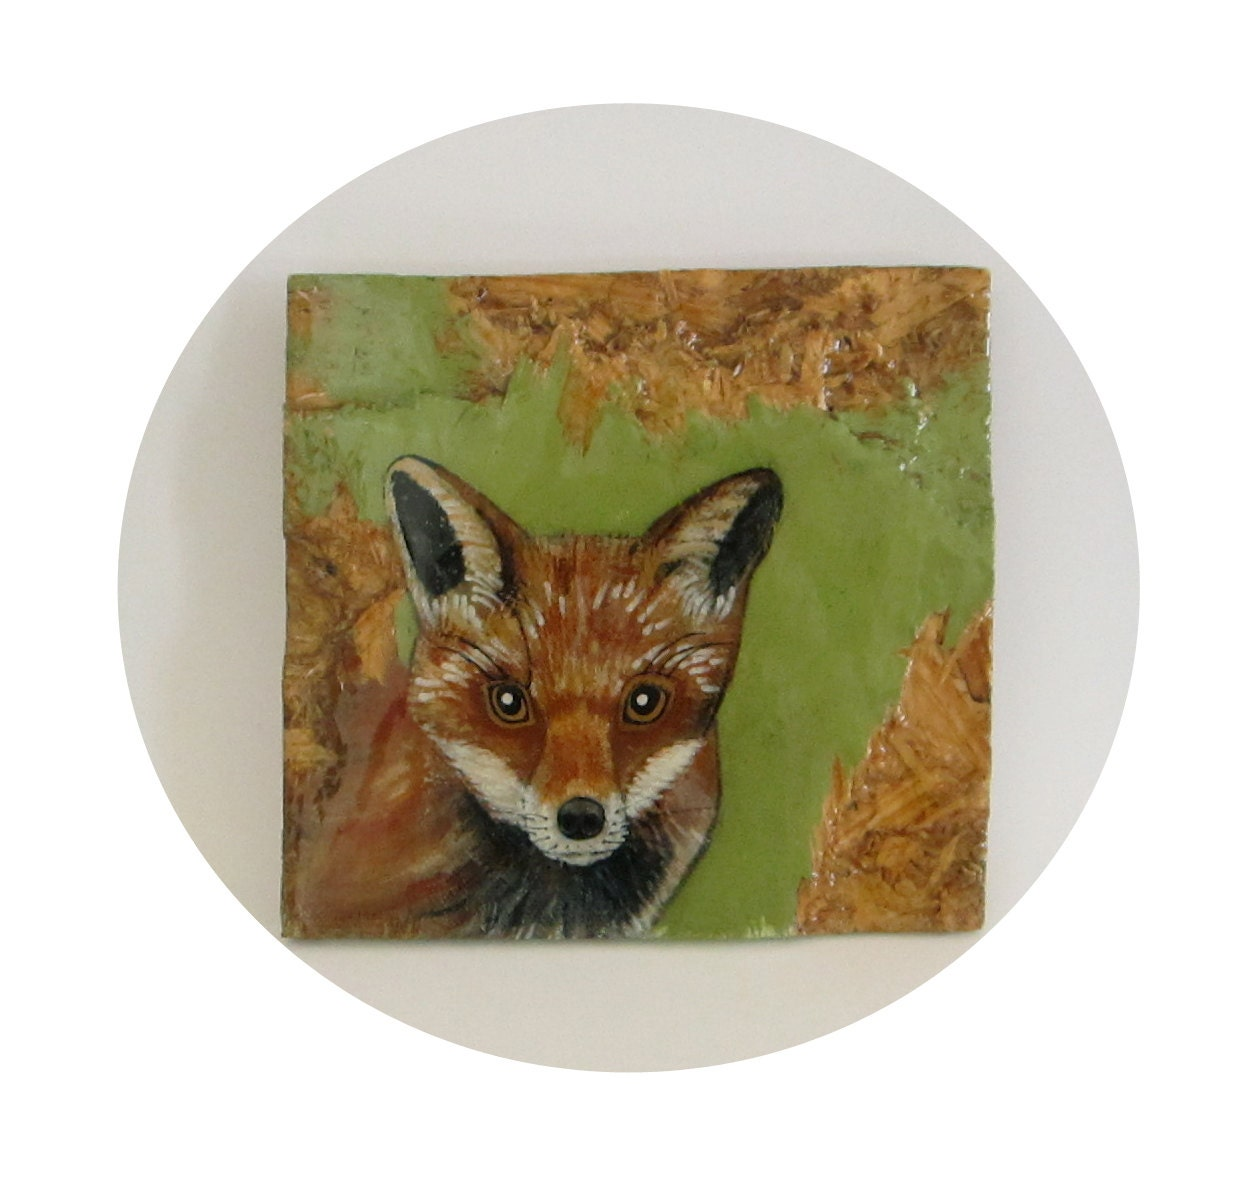 Http Www Etsy Com Listing 110527764 Rustic Home Decor L Red Fox 8x8 Painting